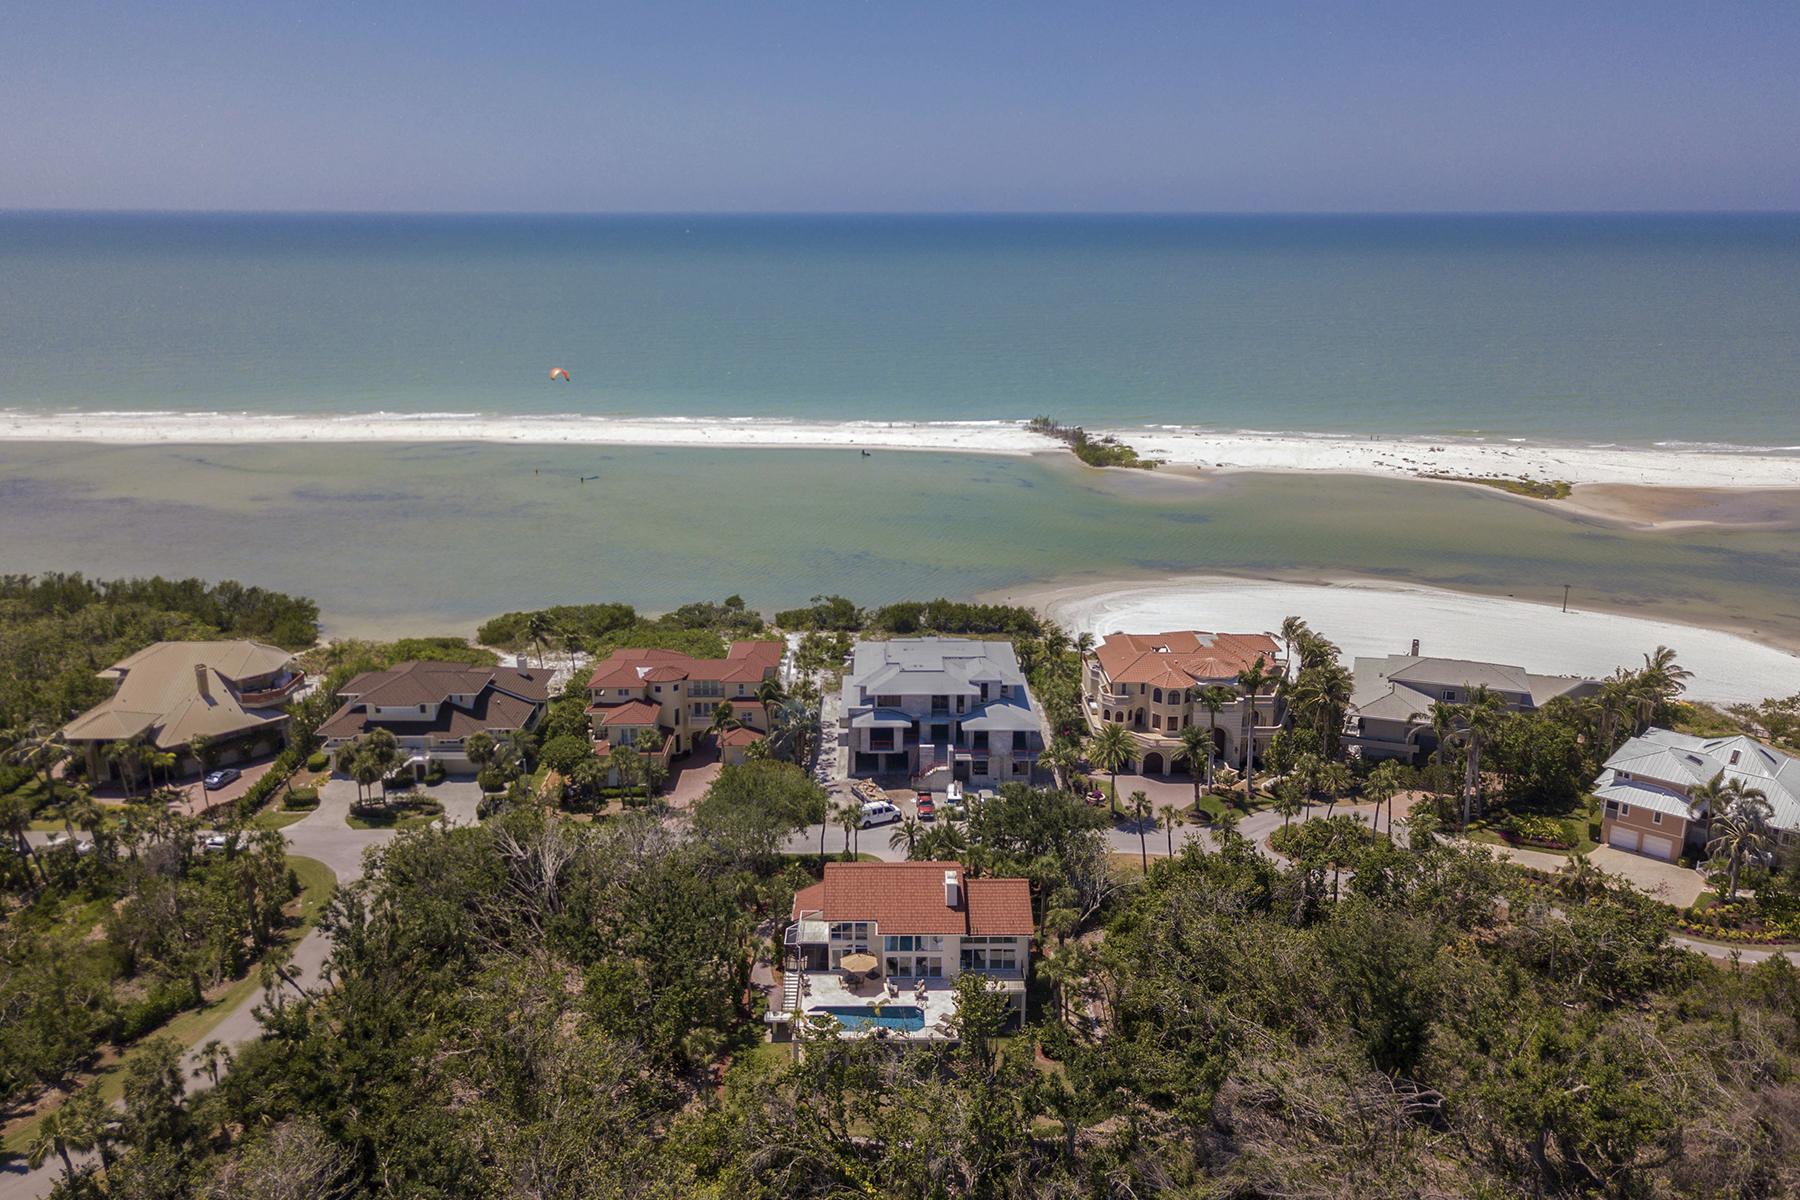 Single Family Home for Sale at HIDEAWAY BEACH 871 Sea Dune Ln, Marco Island, Florida 34145 United States